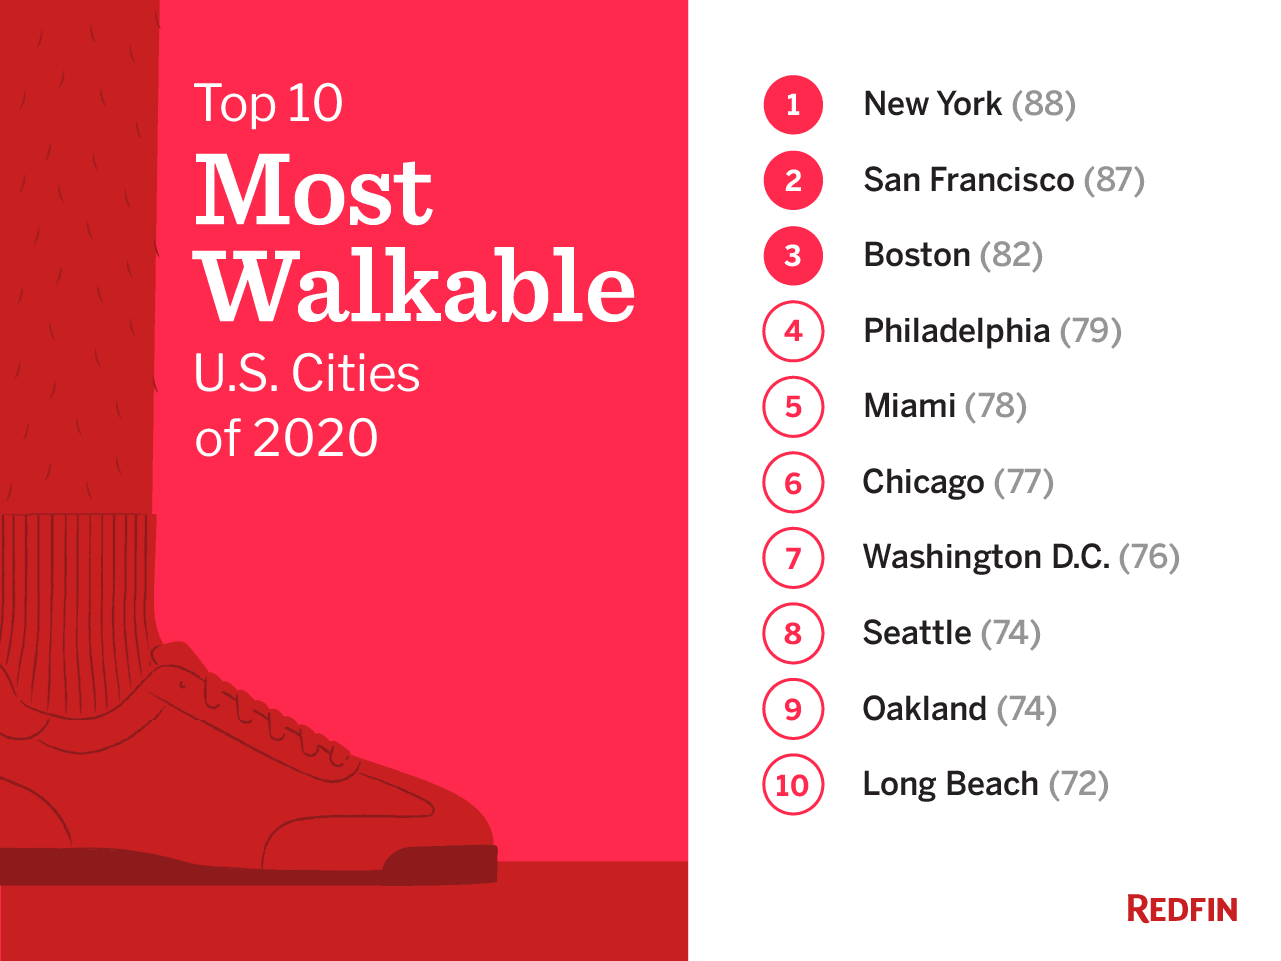 Redfin Unveils the Most Walkable U.S. Cities of 2020 in